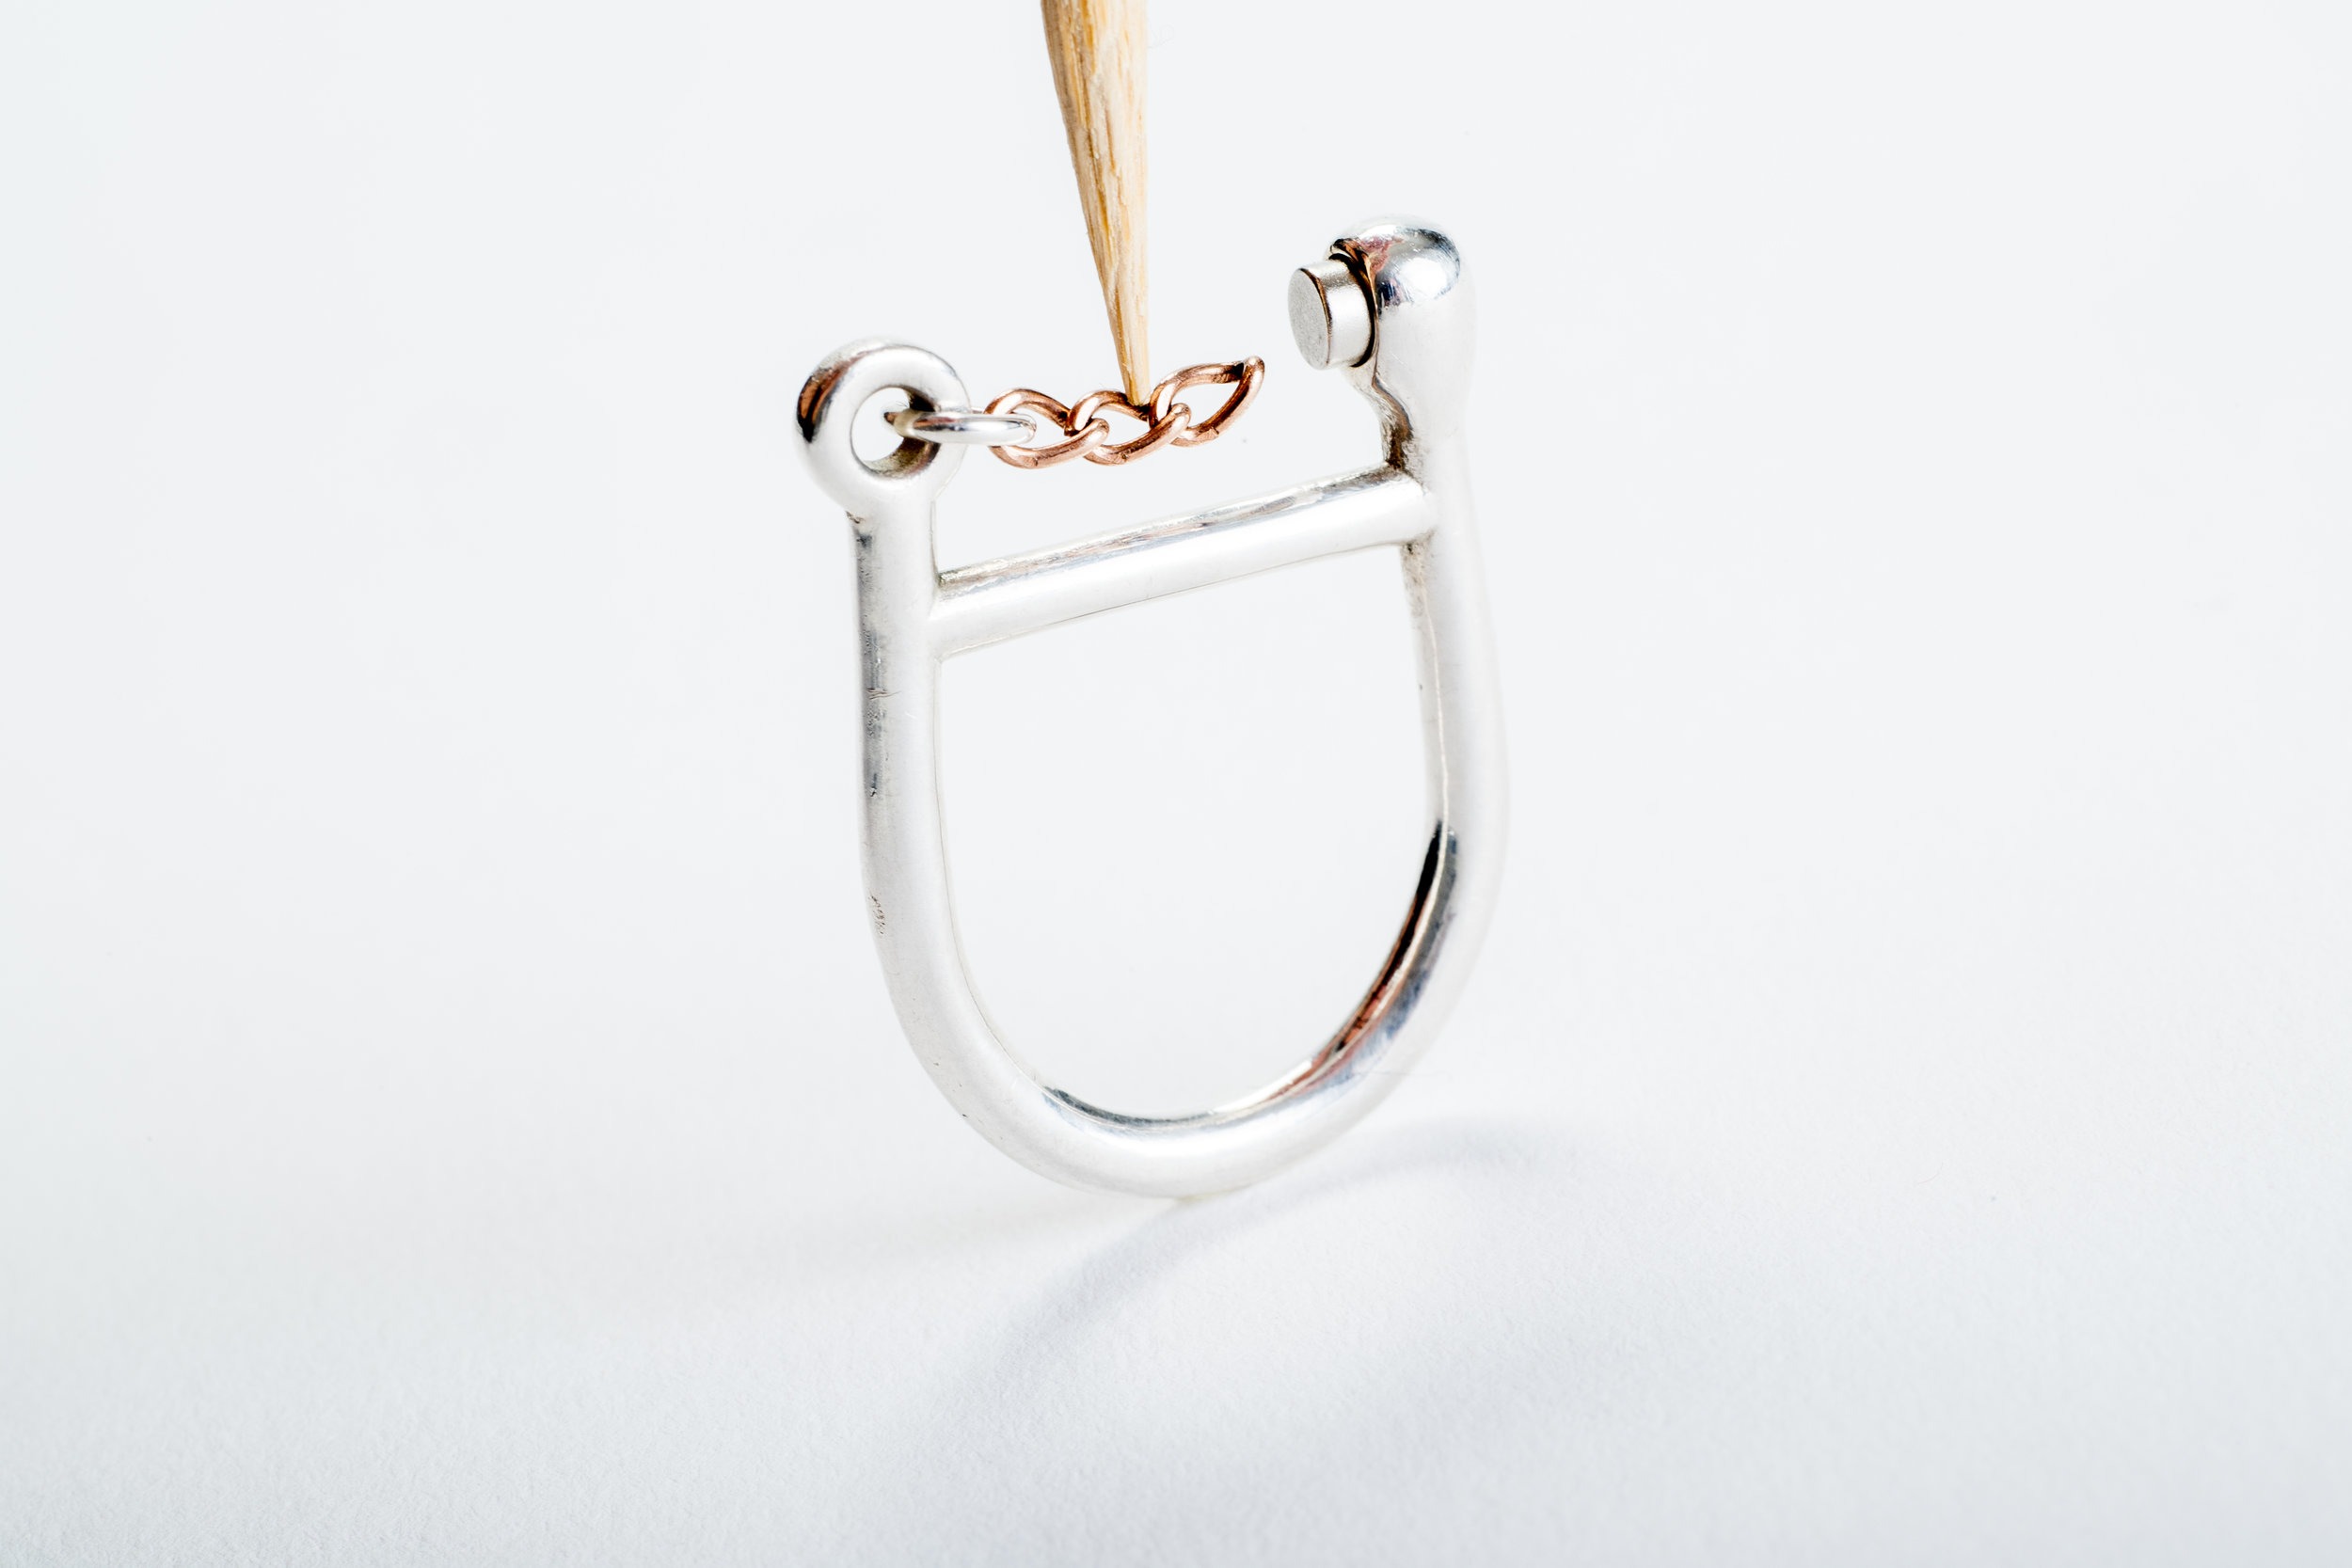 Wyna+One+Loop+Ring+Chain (1).jpg